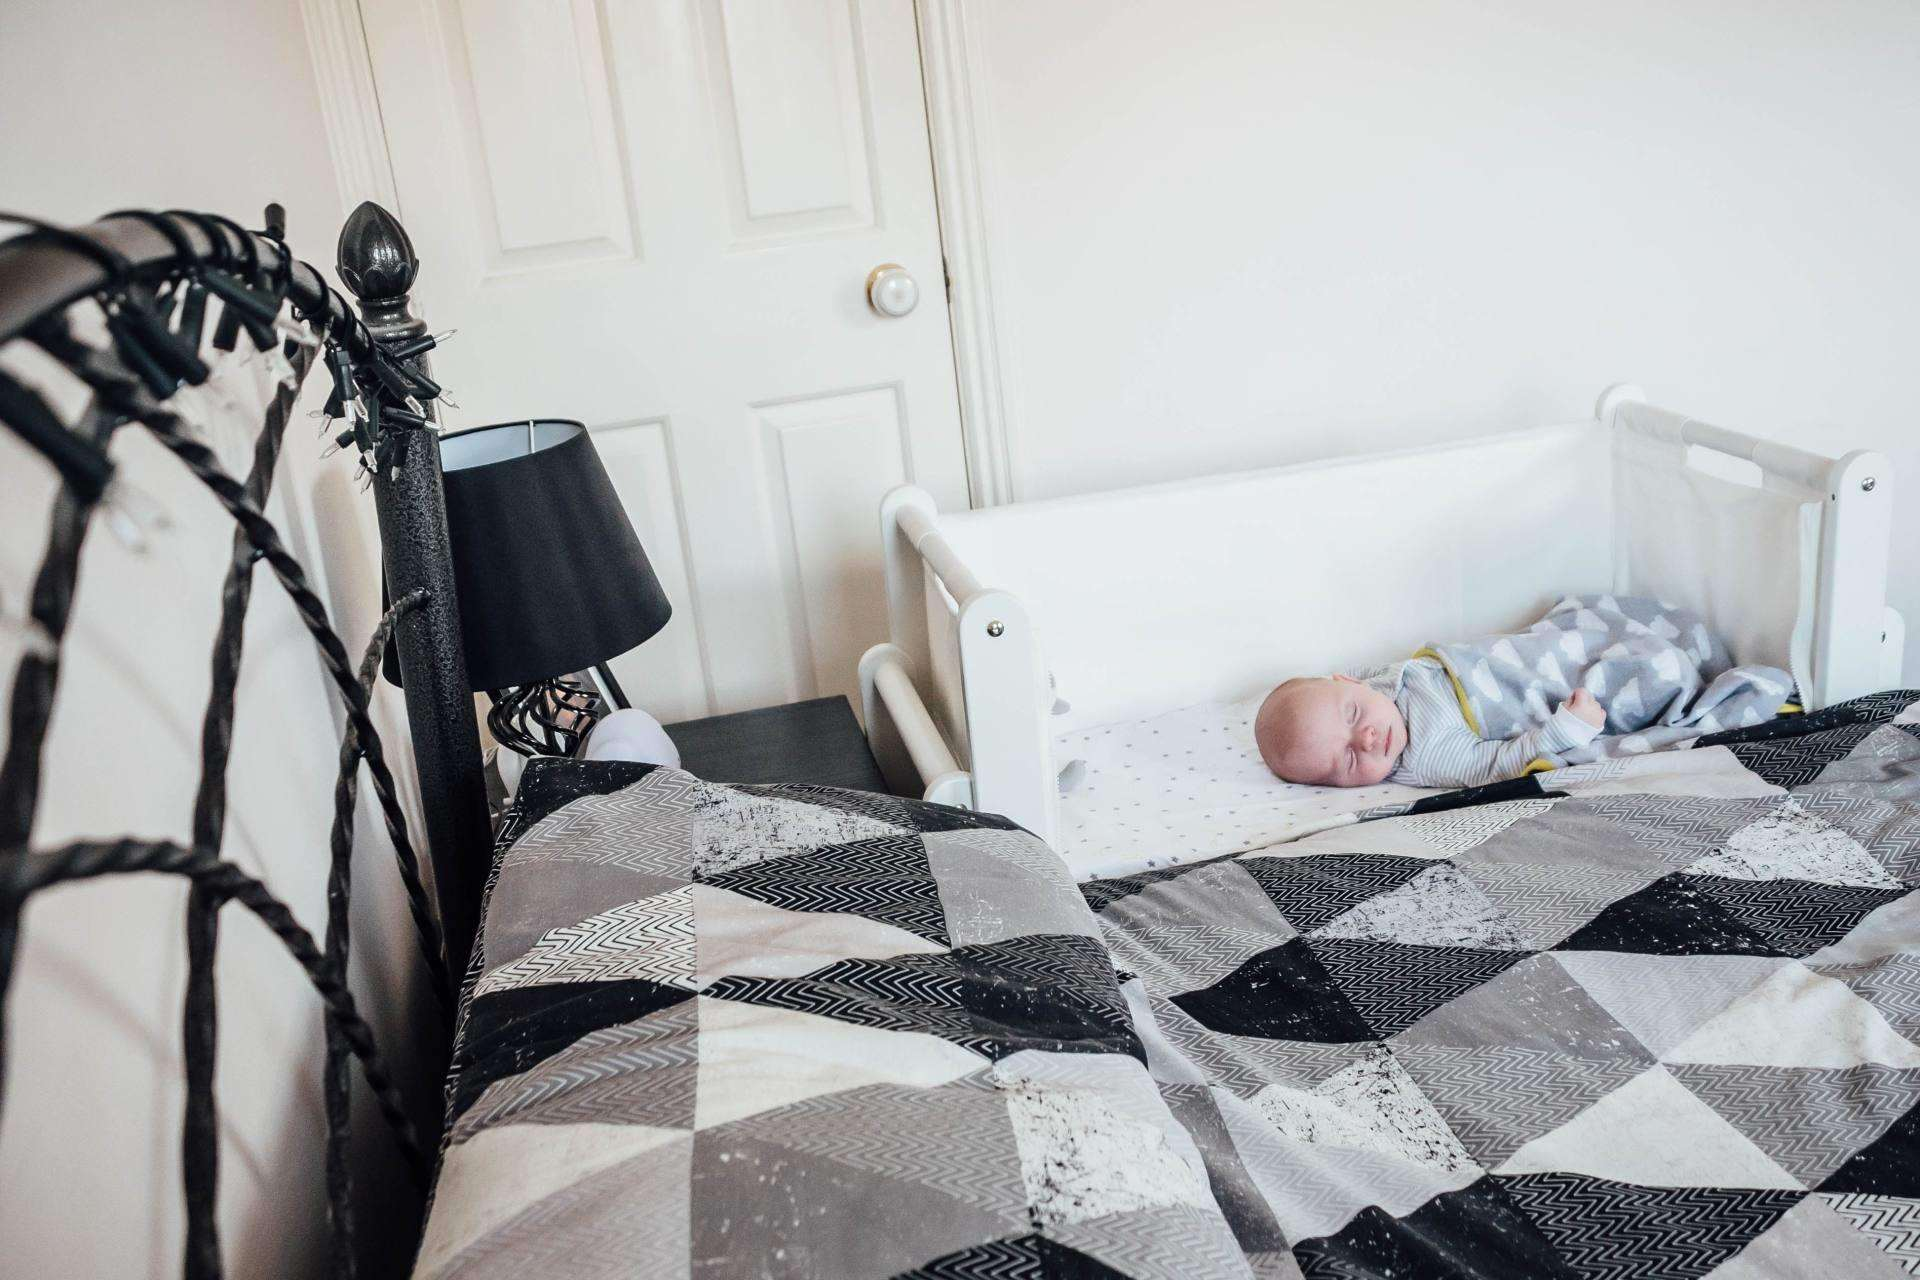 SnüzPod 2 3-in-1 Bedside Crib Review, TDN SnuzPod Review 4%, product-review, expecting, 0-1%